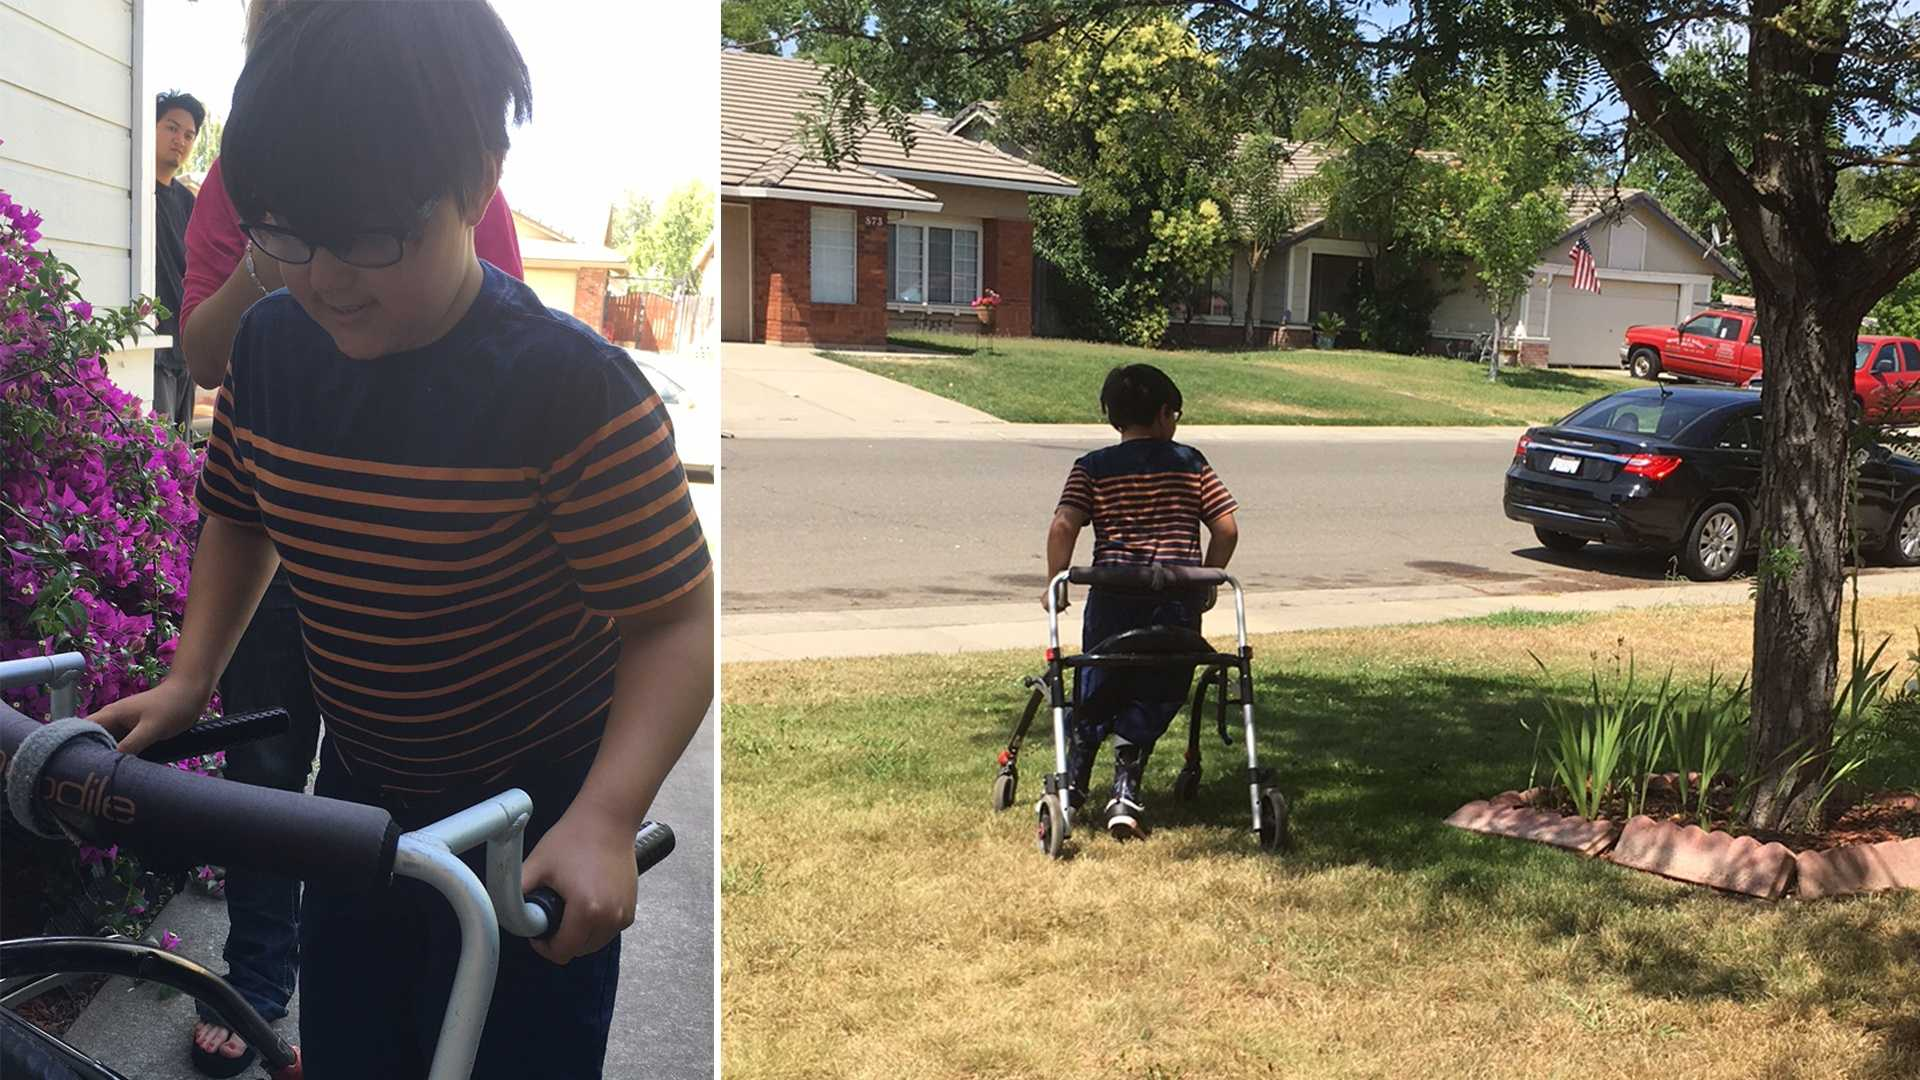 Aiden Sanabria, 11, is reunited with his walker on Friday, June 3, 2016. It was taken Wednesday night and was returned Friday. Aiden said he uses it to manage his cerebral palsy.